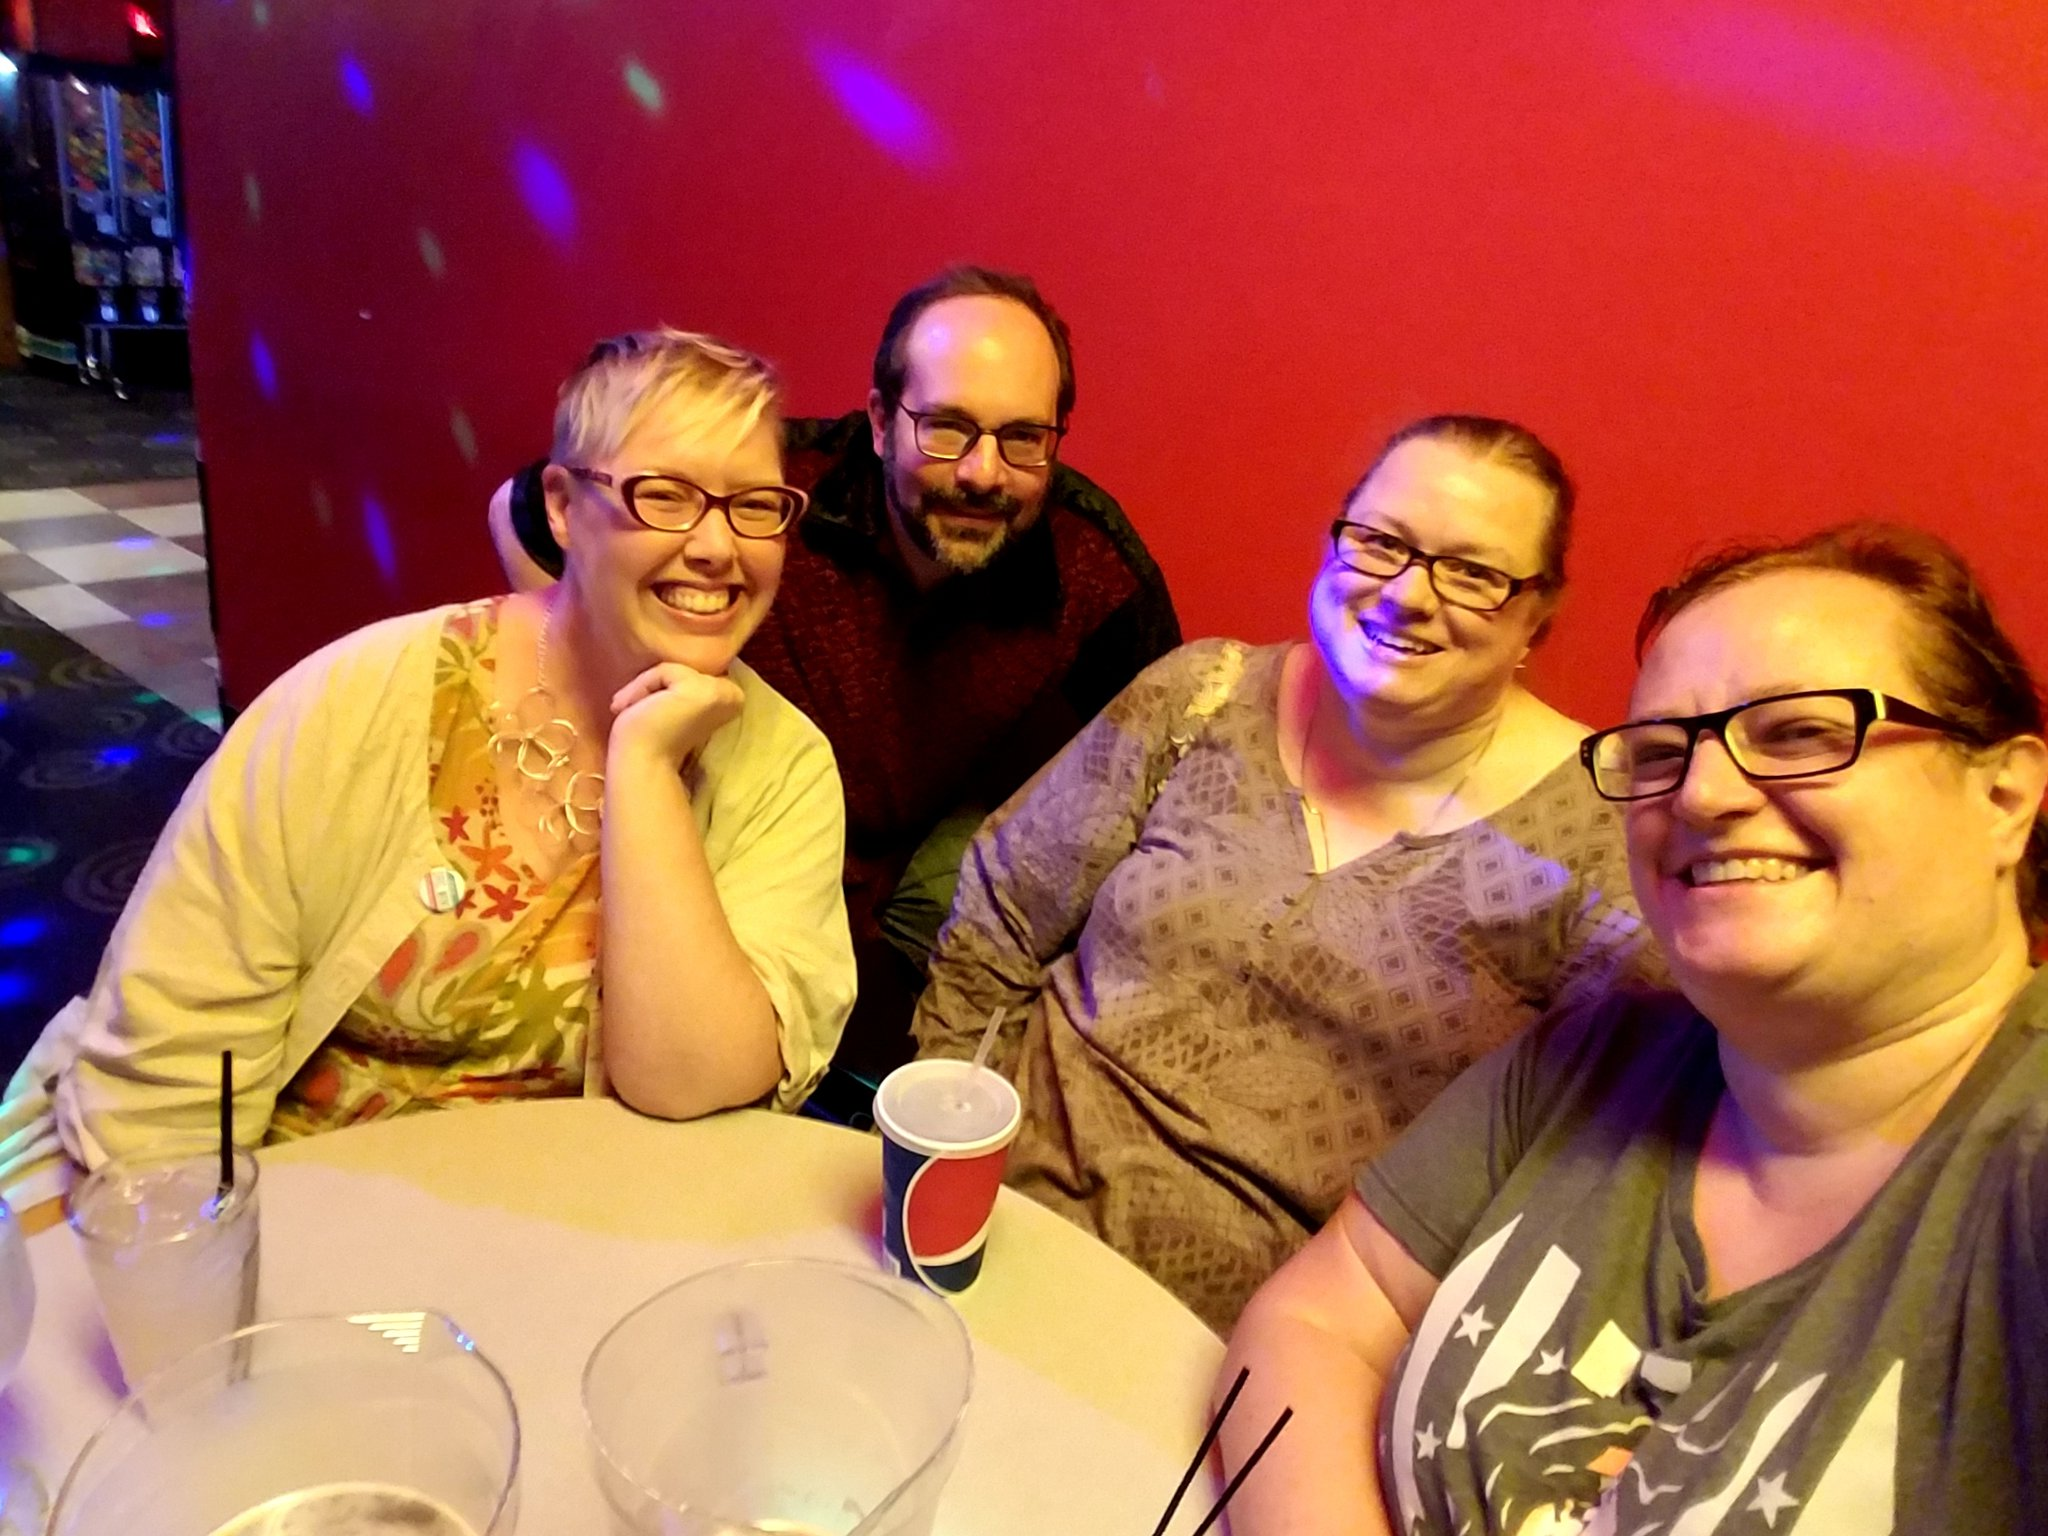 #cwcon is always more fun with great company! @tengrrl @s2ceball @eymand https://t.co/CO6mppgbp7